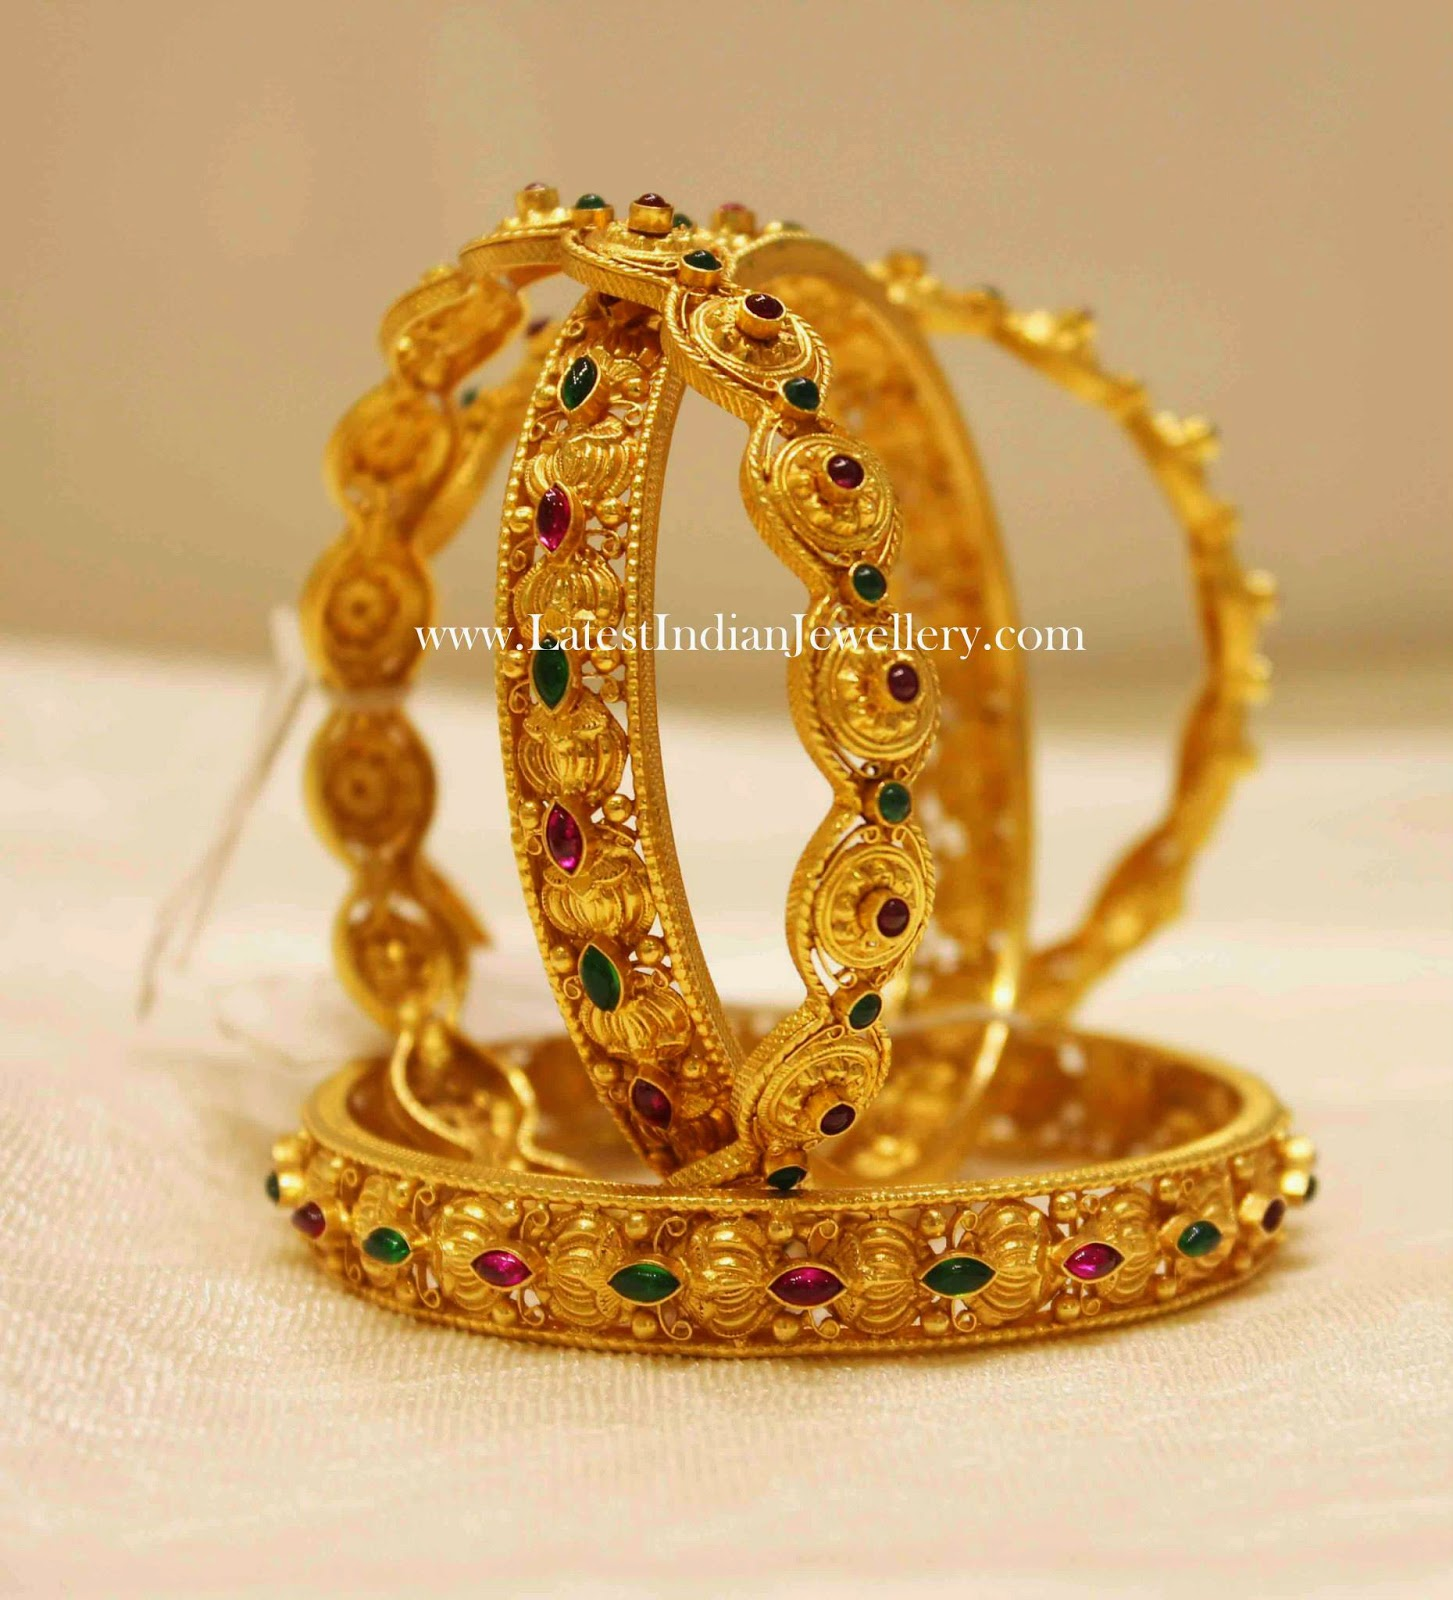 Gold Bangles with Ruby Emeralds